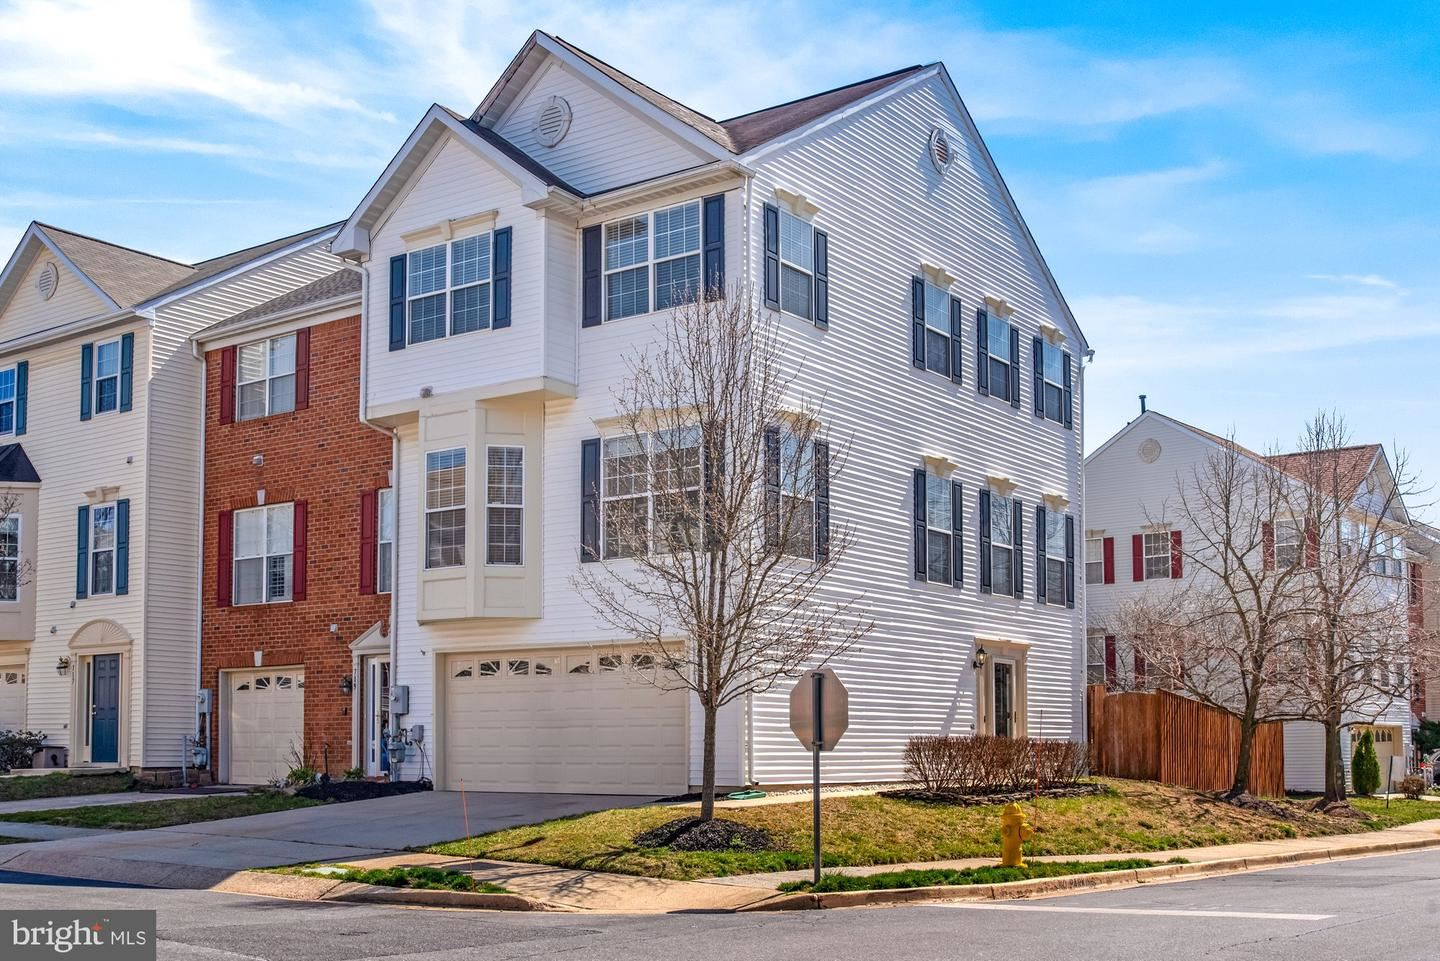 721 SUMMERTIME DR, Odenton, MD 21113 - MLS#: MDAA462186